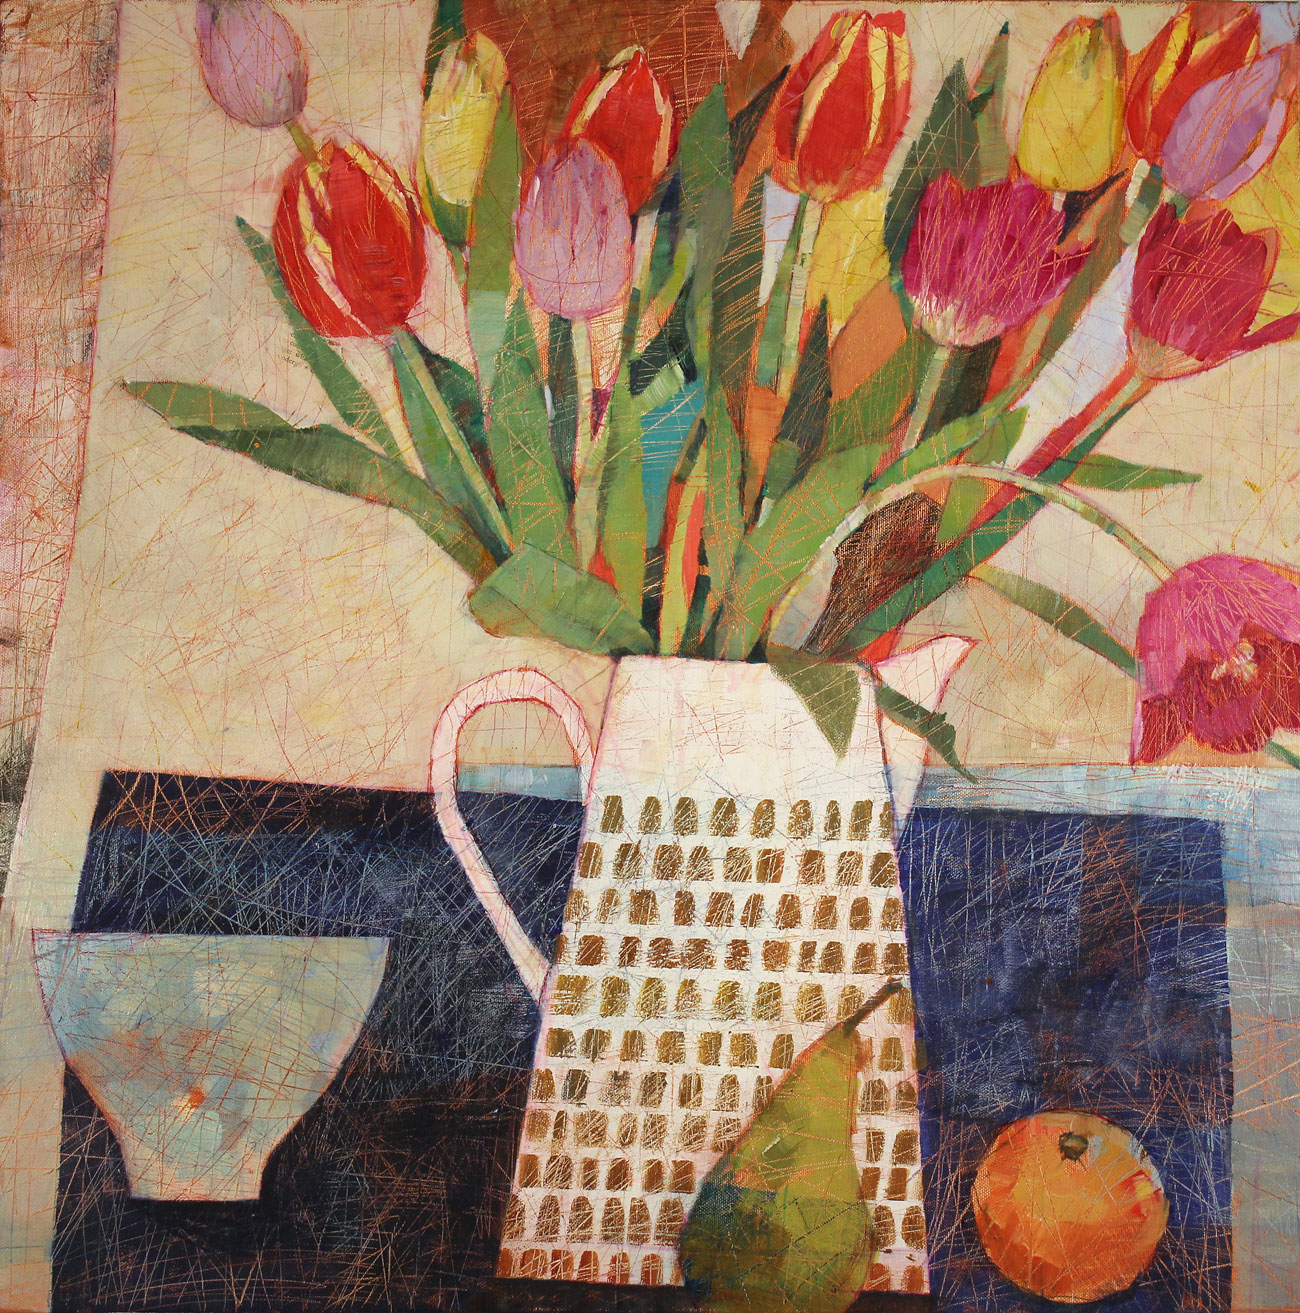 Sally Anne Fitter, Original acrylic painting on canvas, Orange and Spring Tulips Click to enlarge